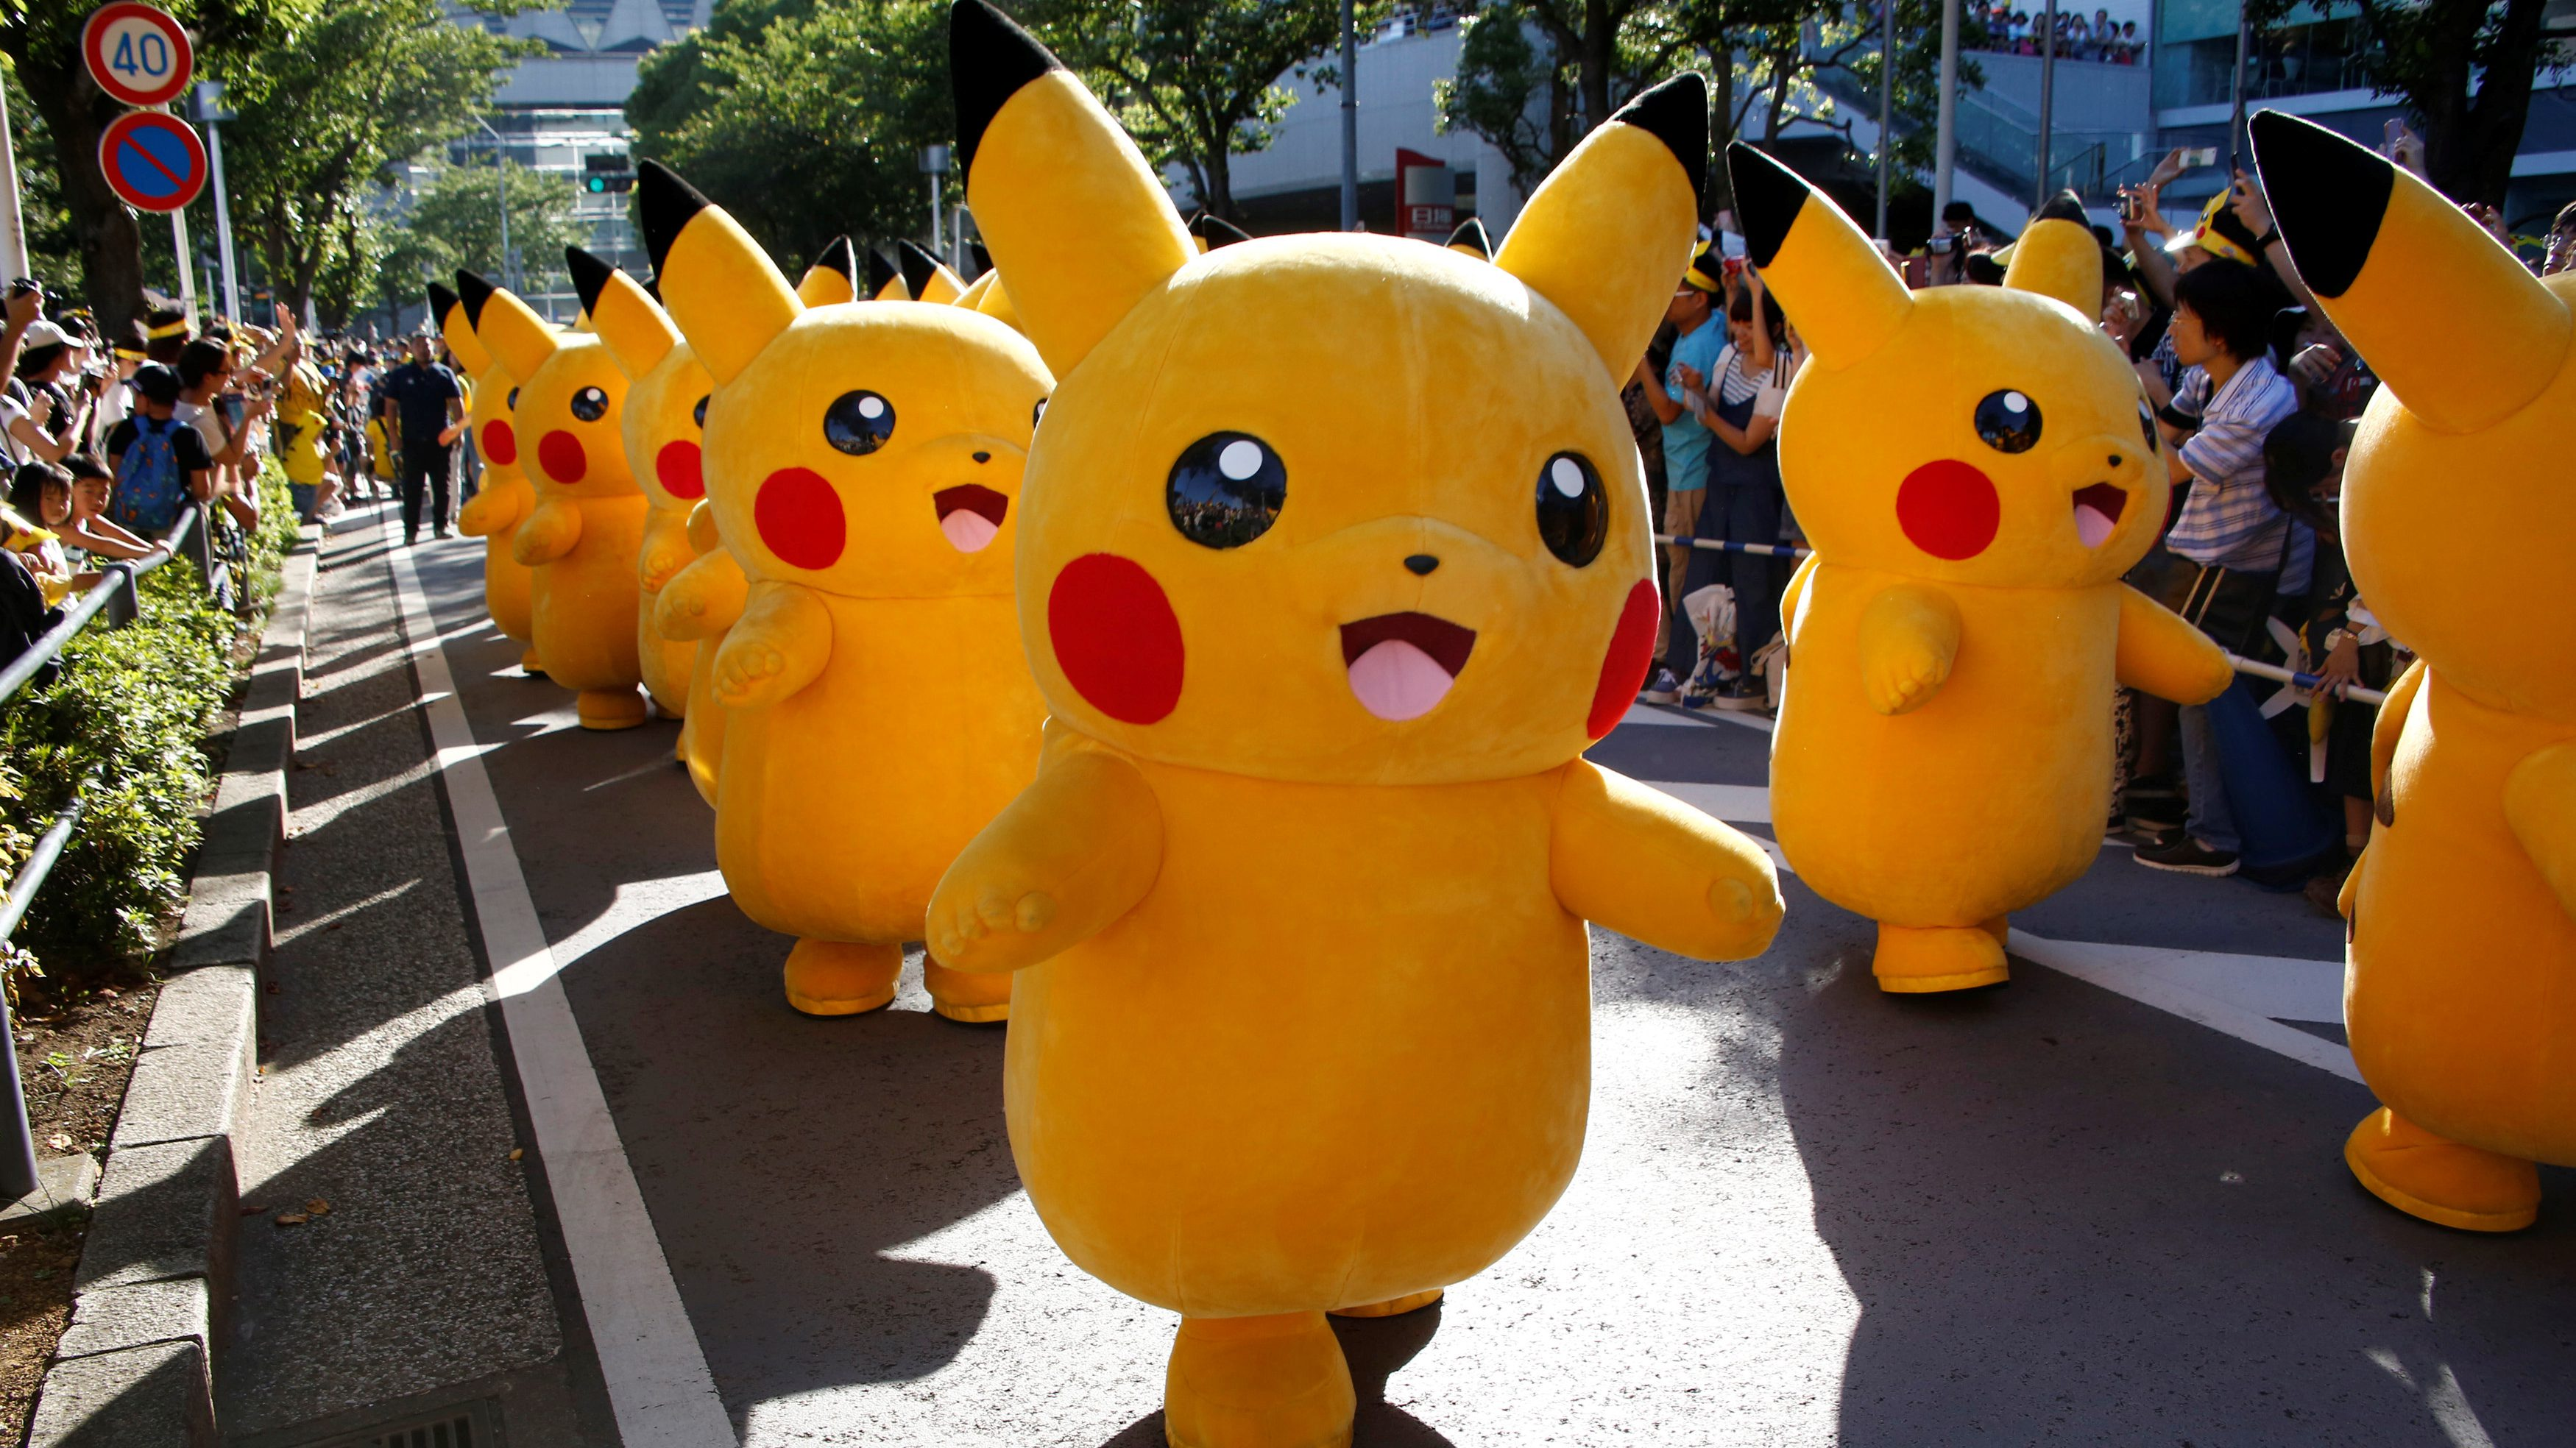 Performers wearing Pokemon's character Pikachu costumes take part in a parade in Yokohama, Japan, August 7, 2016.